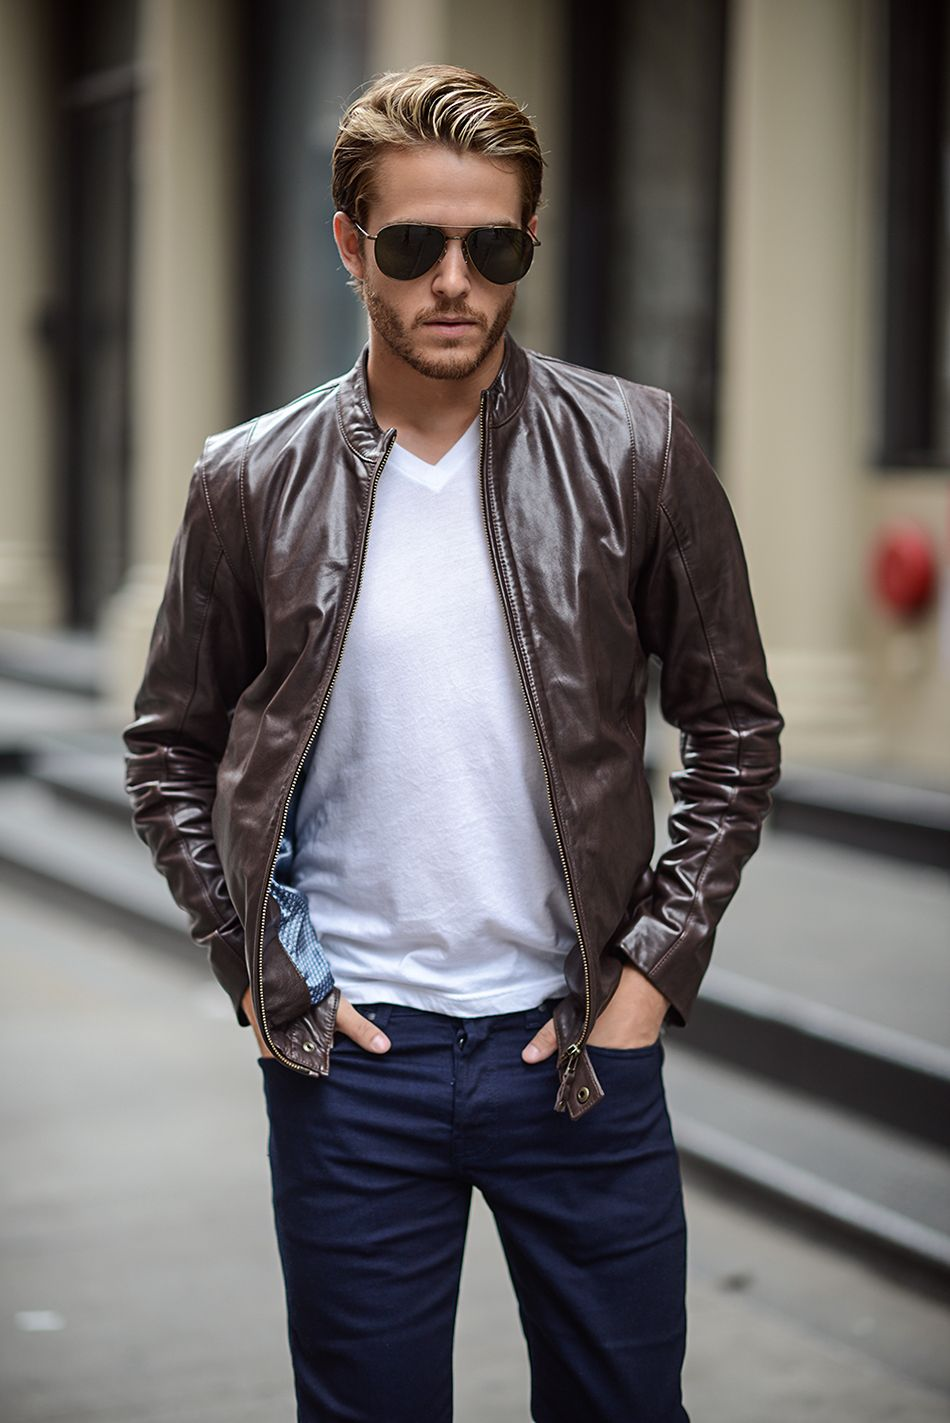 259f366aa3 MERCER Ted Baker Leather Jacket, First Date Outfit Casual, Adam Gallagher,  Ted Baker